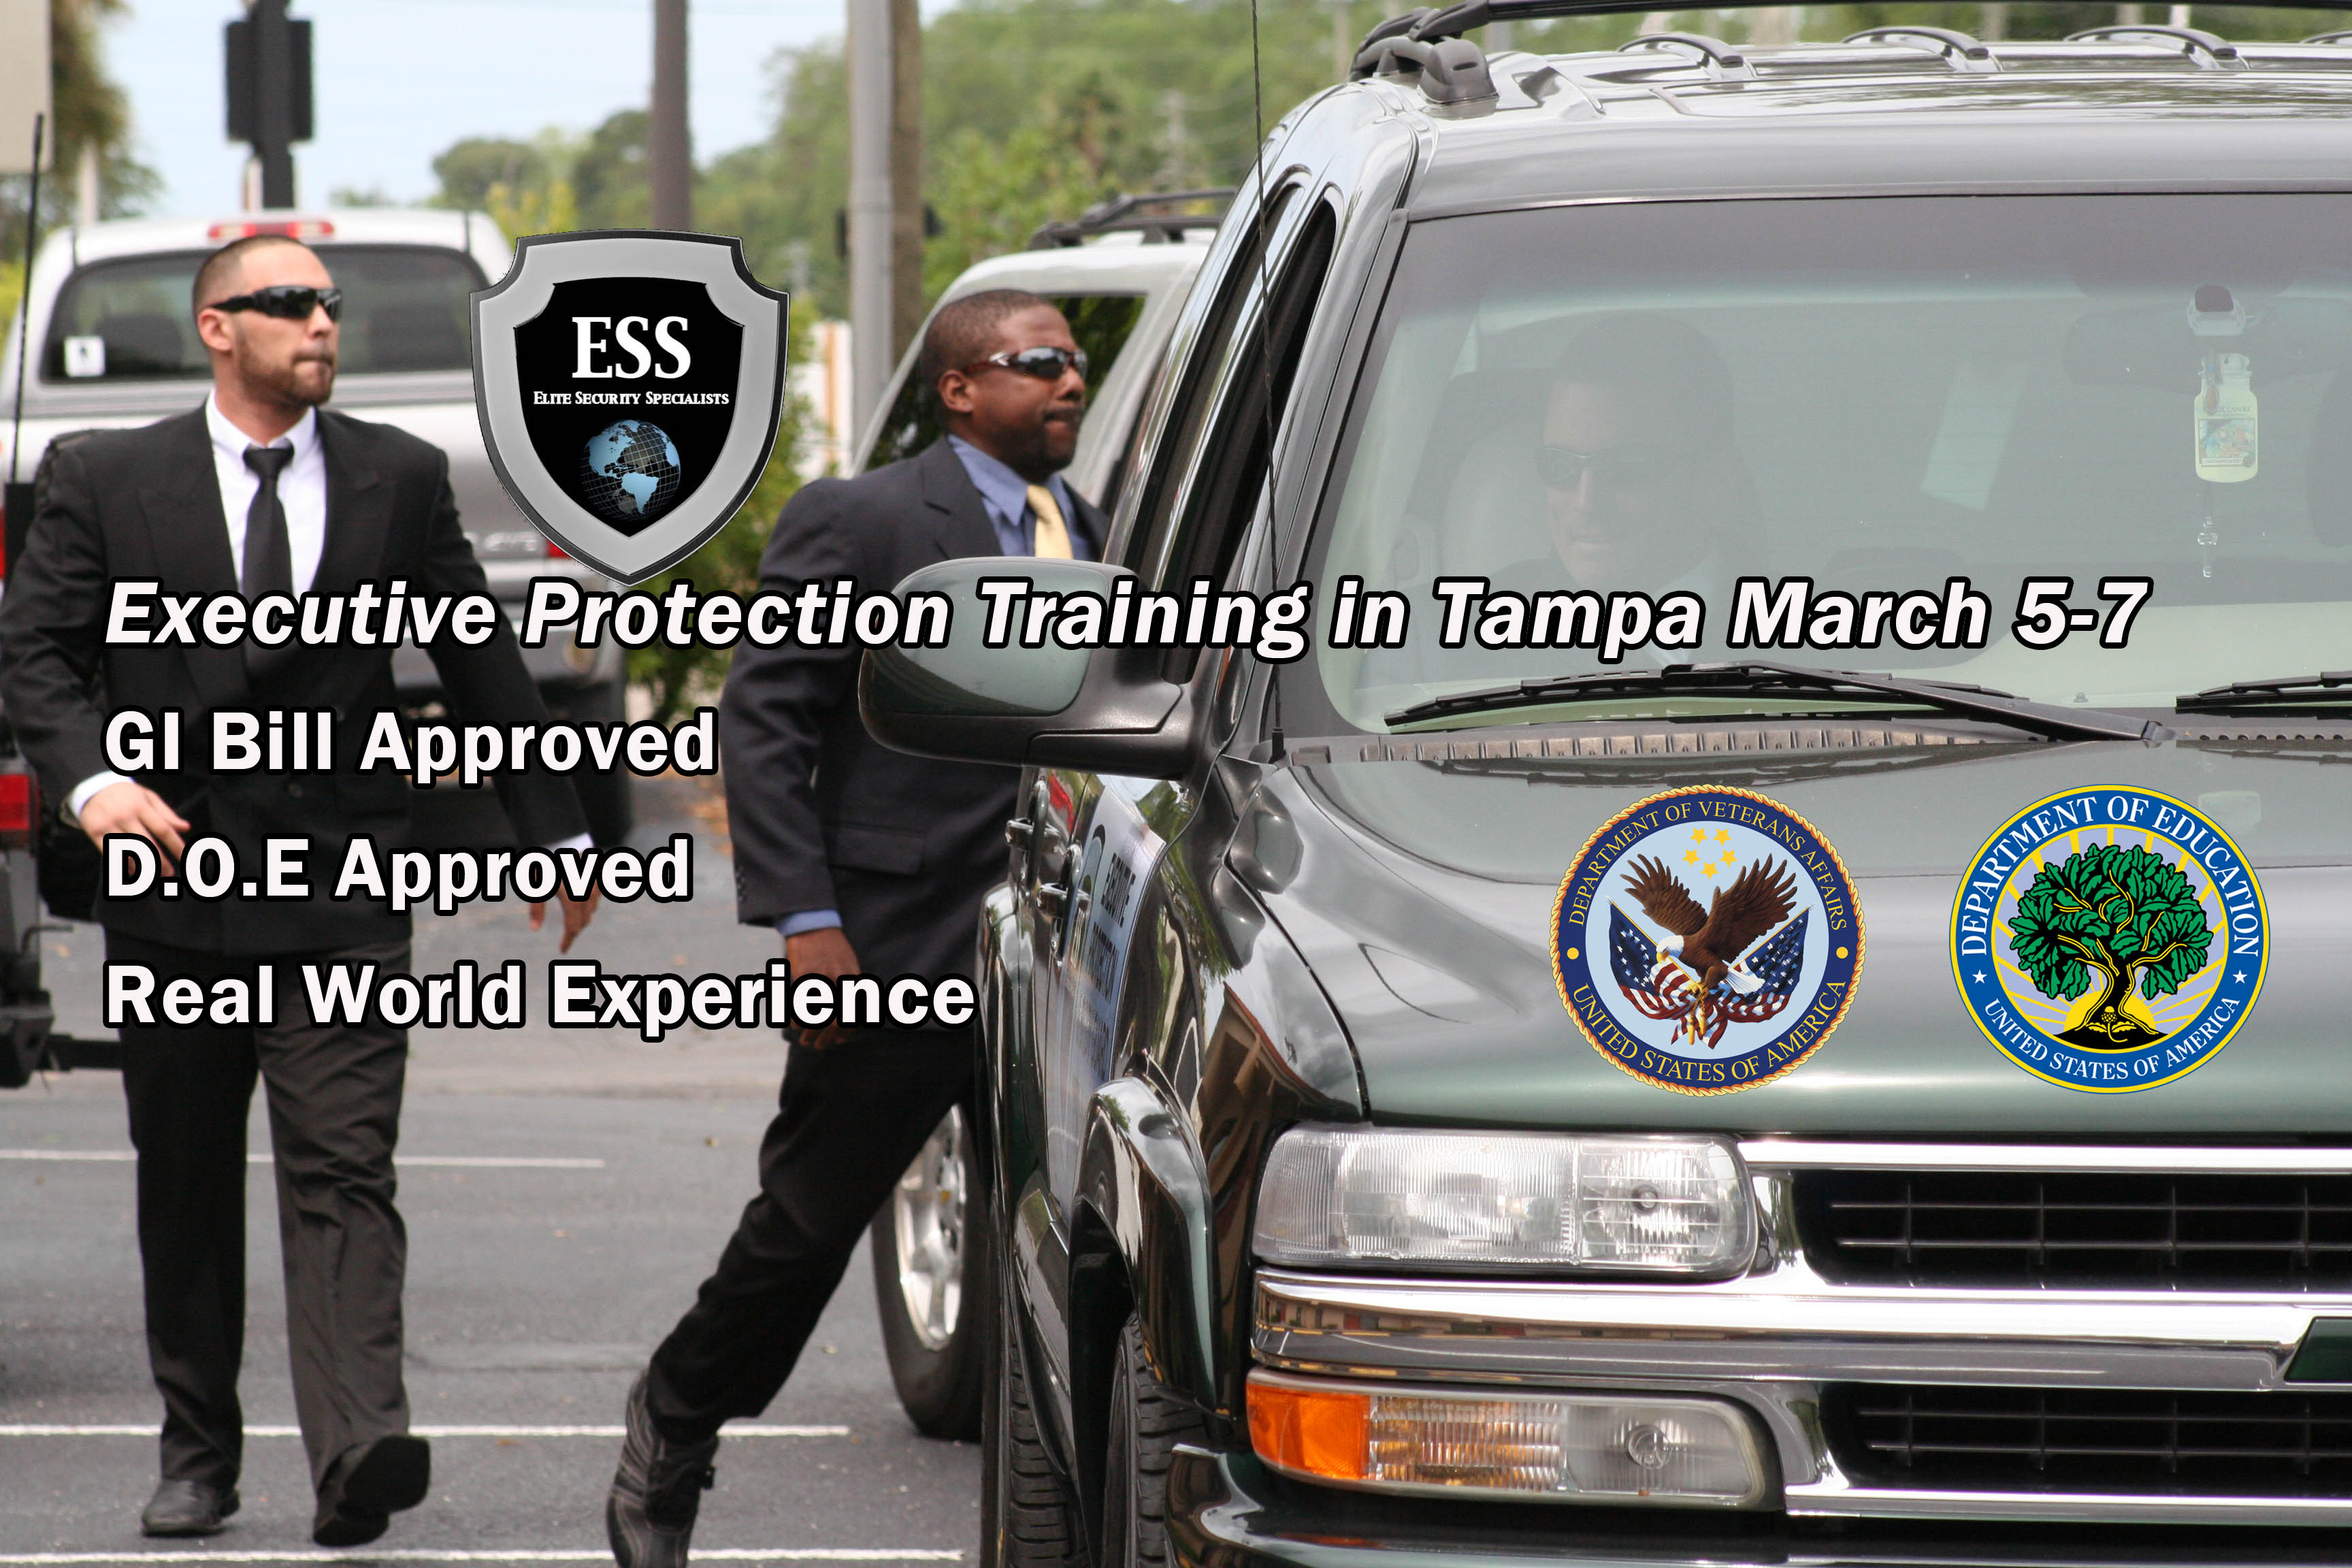 GI Bill Approved Executive Protection Training March 5-7